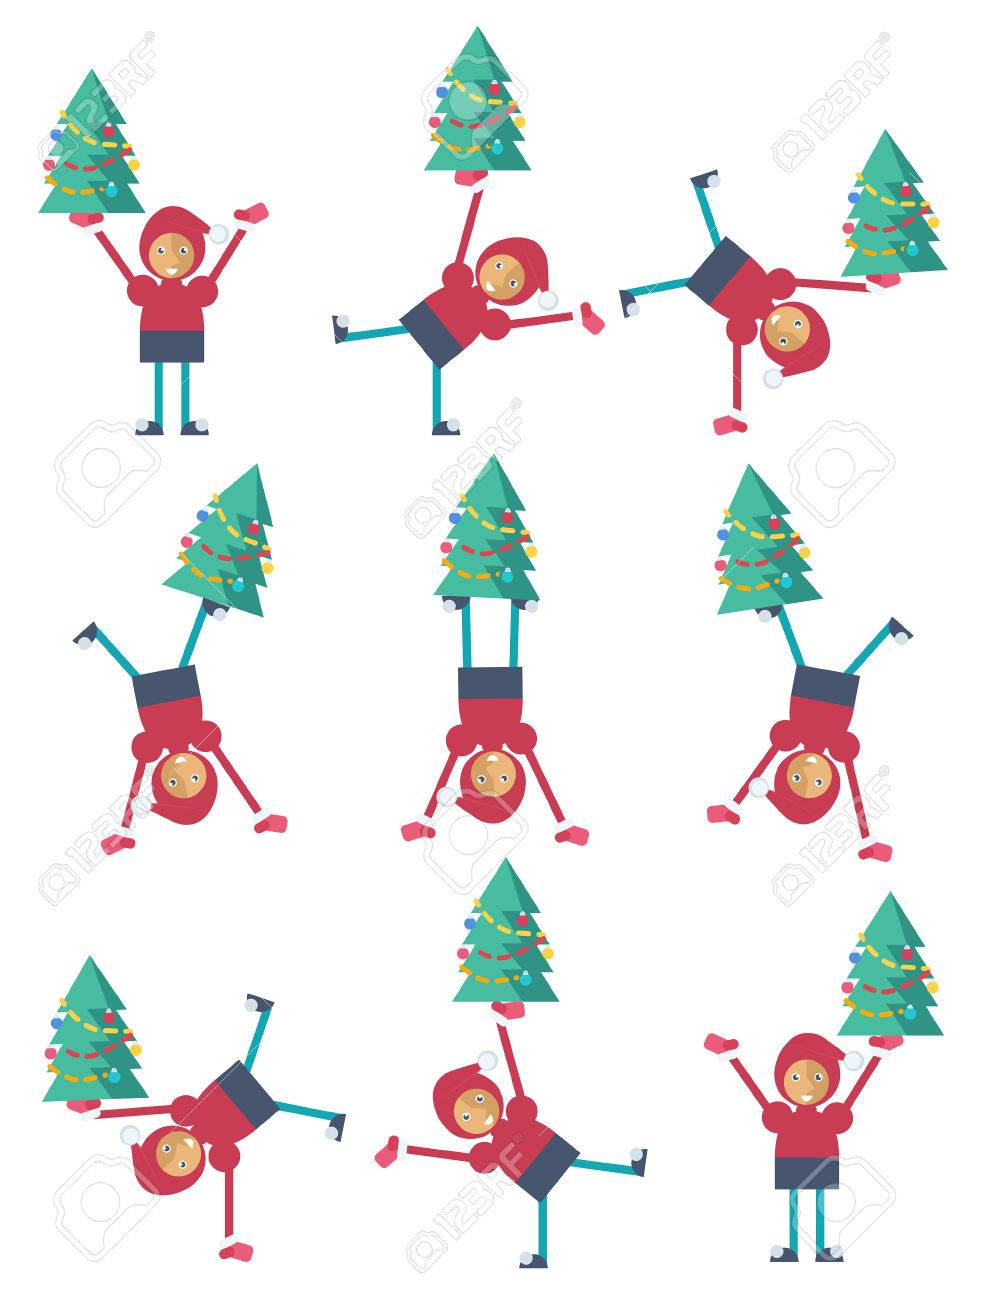 A funny Christmas elf doing a somersault with a Christmas tree Stock Vector - 44593276